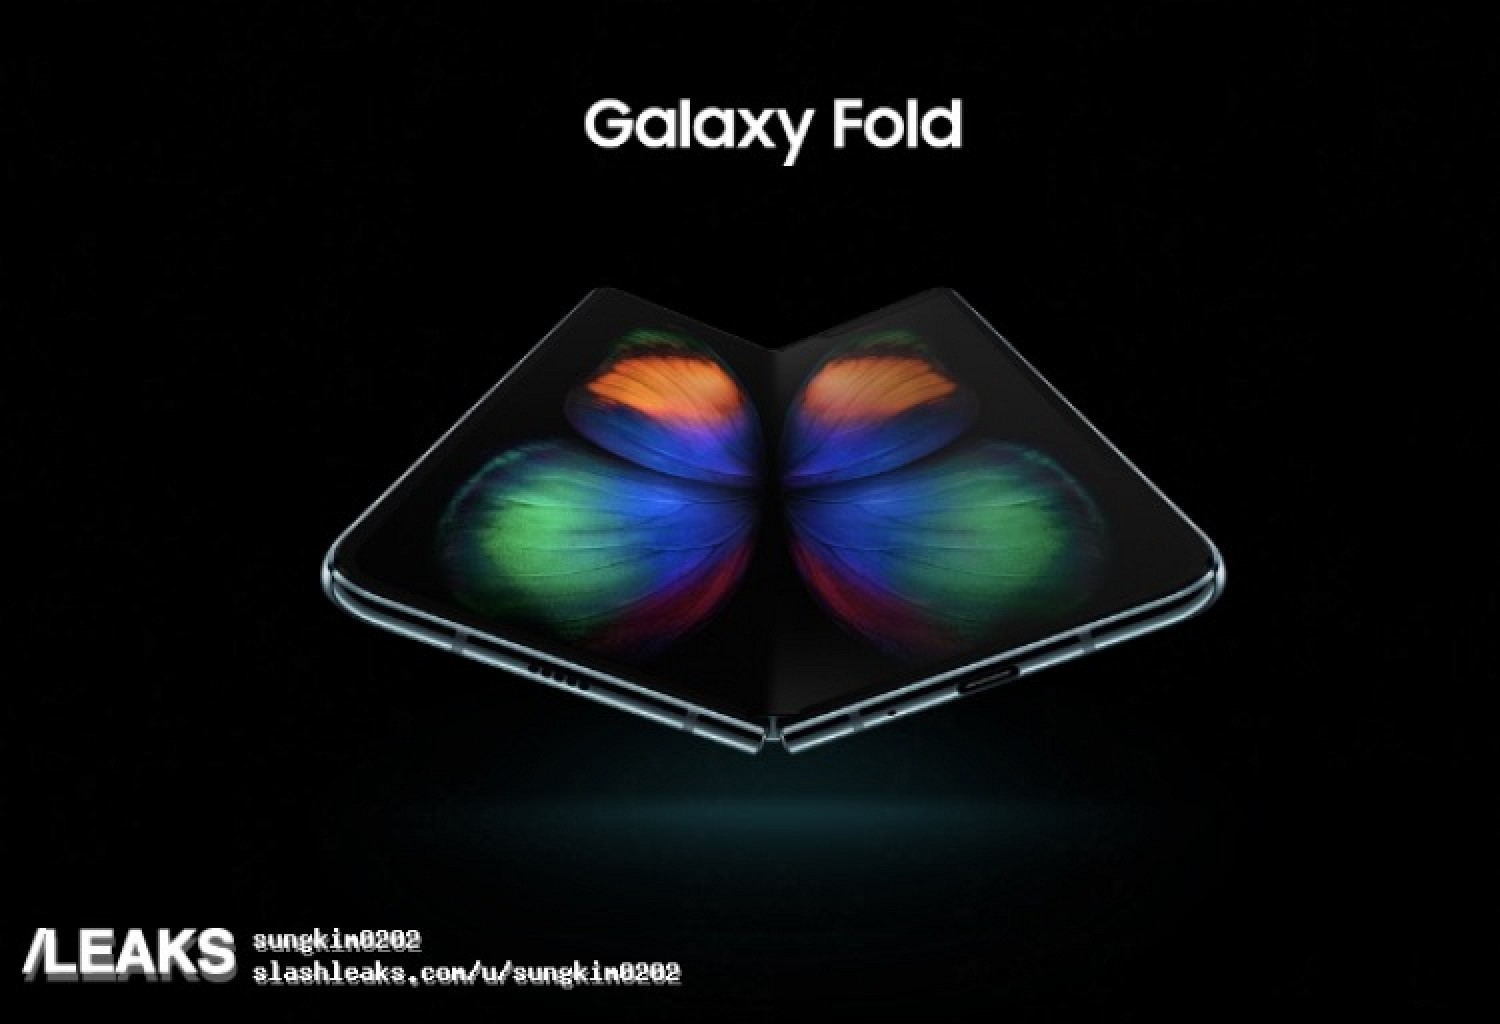 Leaked Renders Allegedly Reveal Samsung's Foldable Phone Hours Ahead of Launch Event